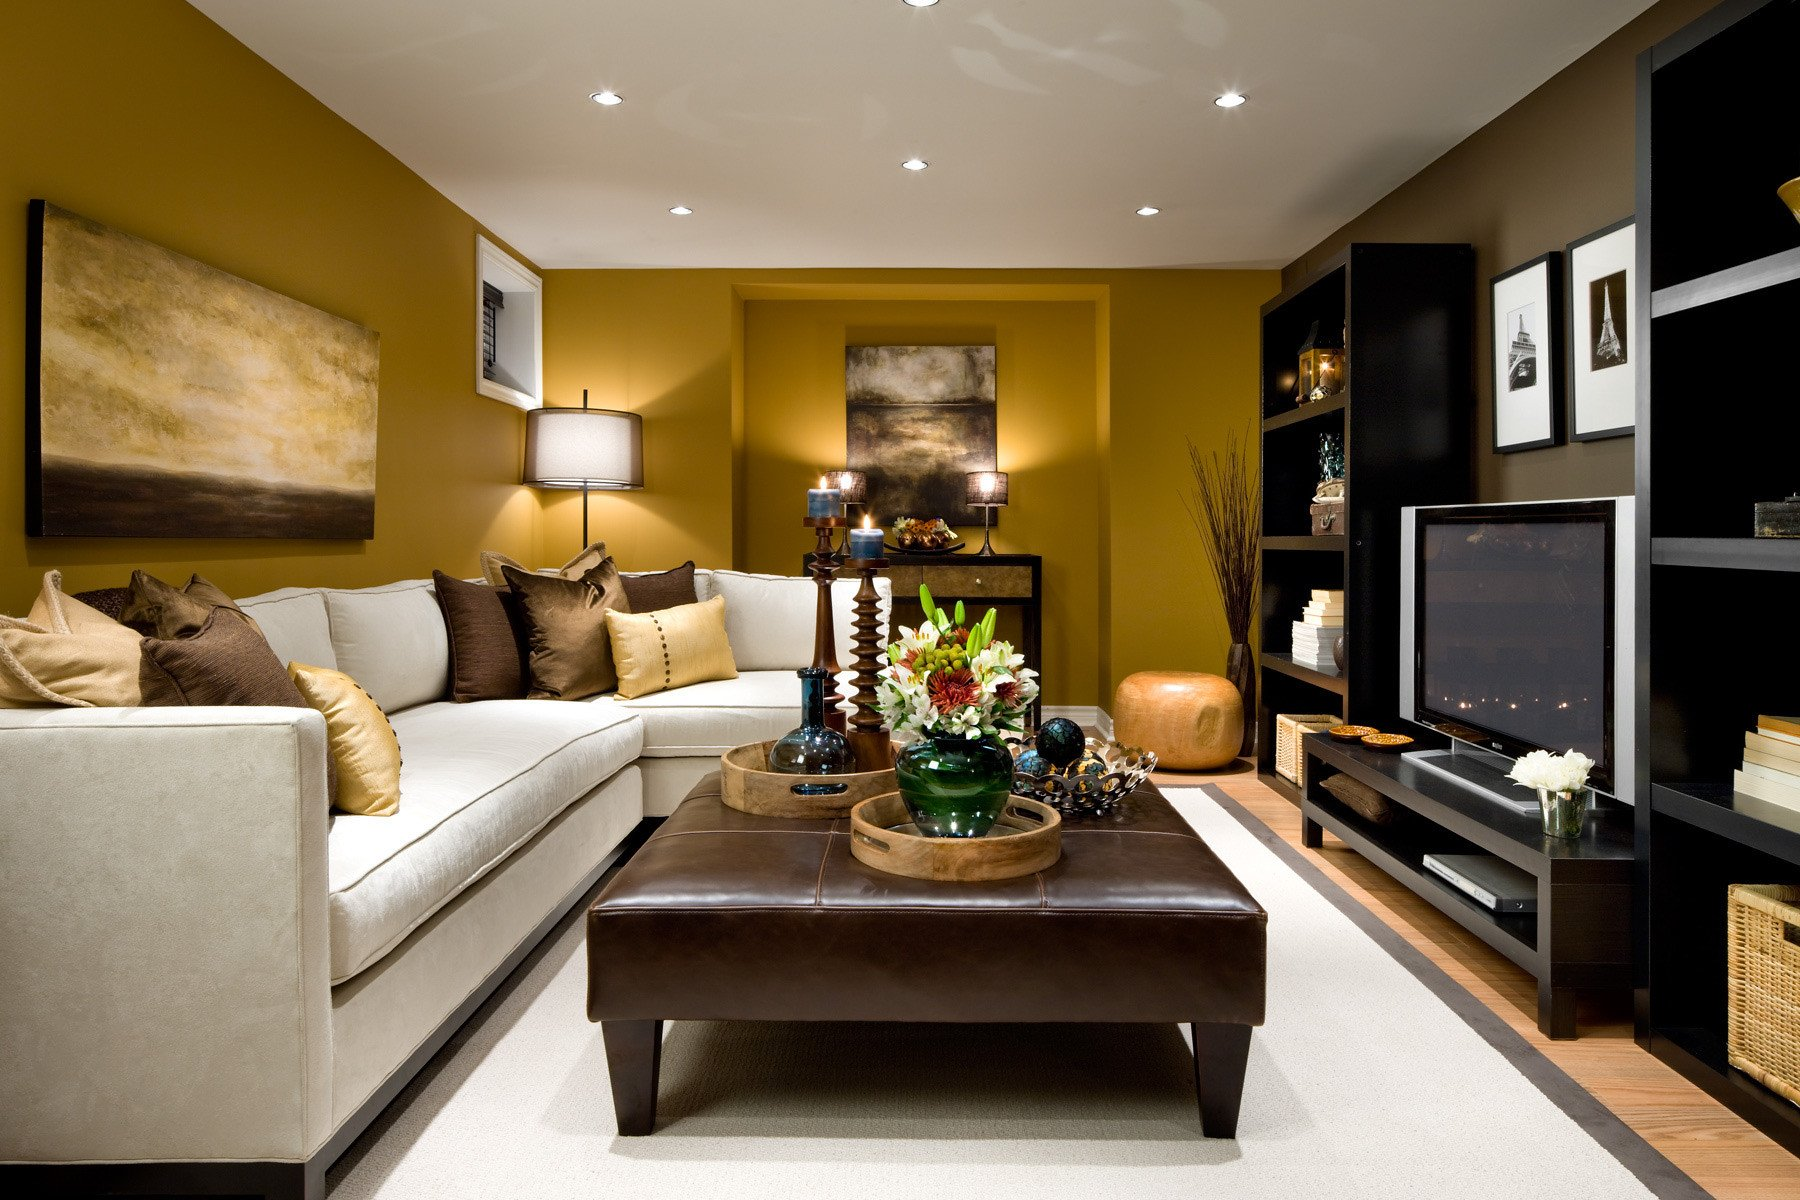 Small Apartment Living Room Decor New 50 Best Small Living Room Design Ideas for 2019